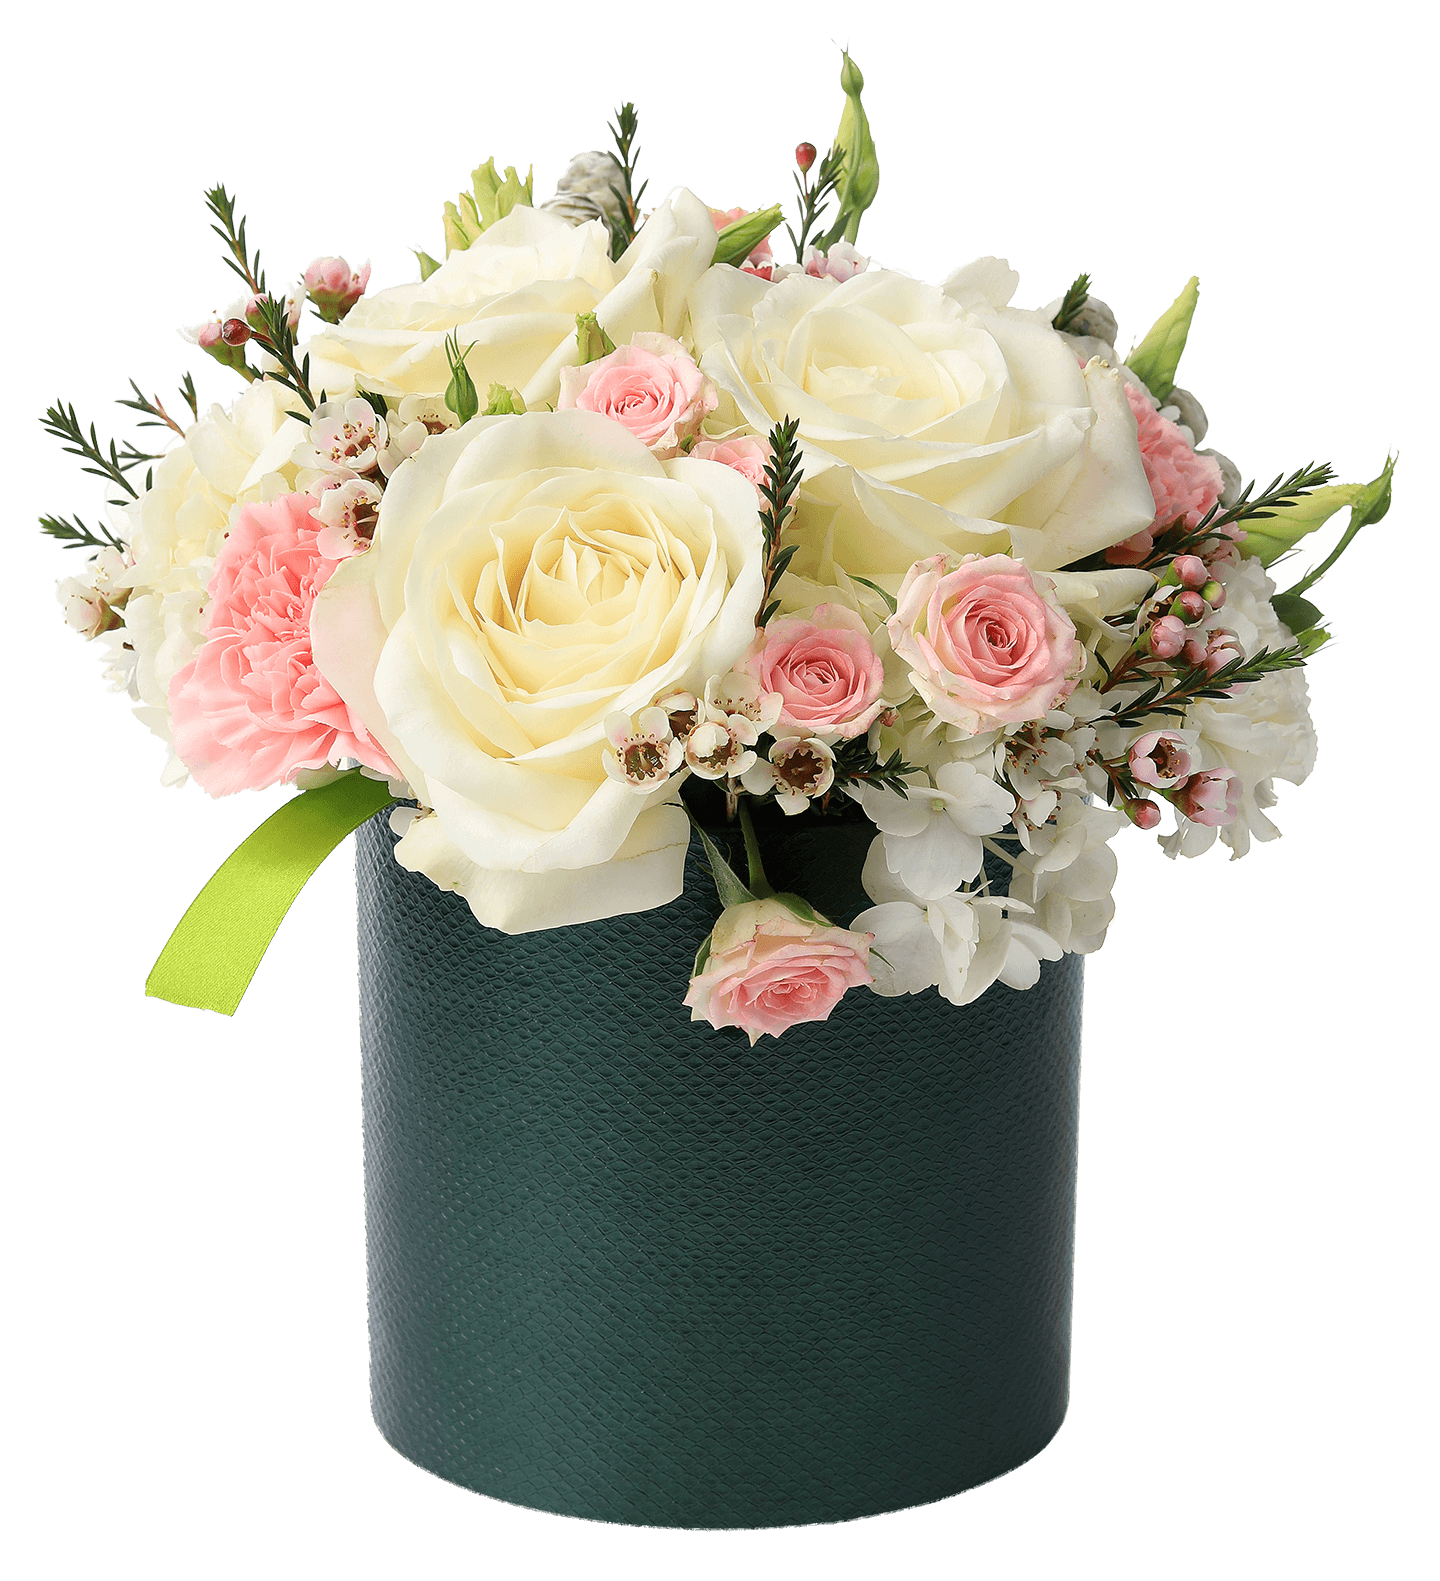 Flower box png. Tube premium packaging solutions